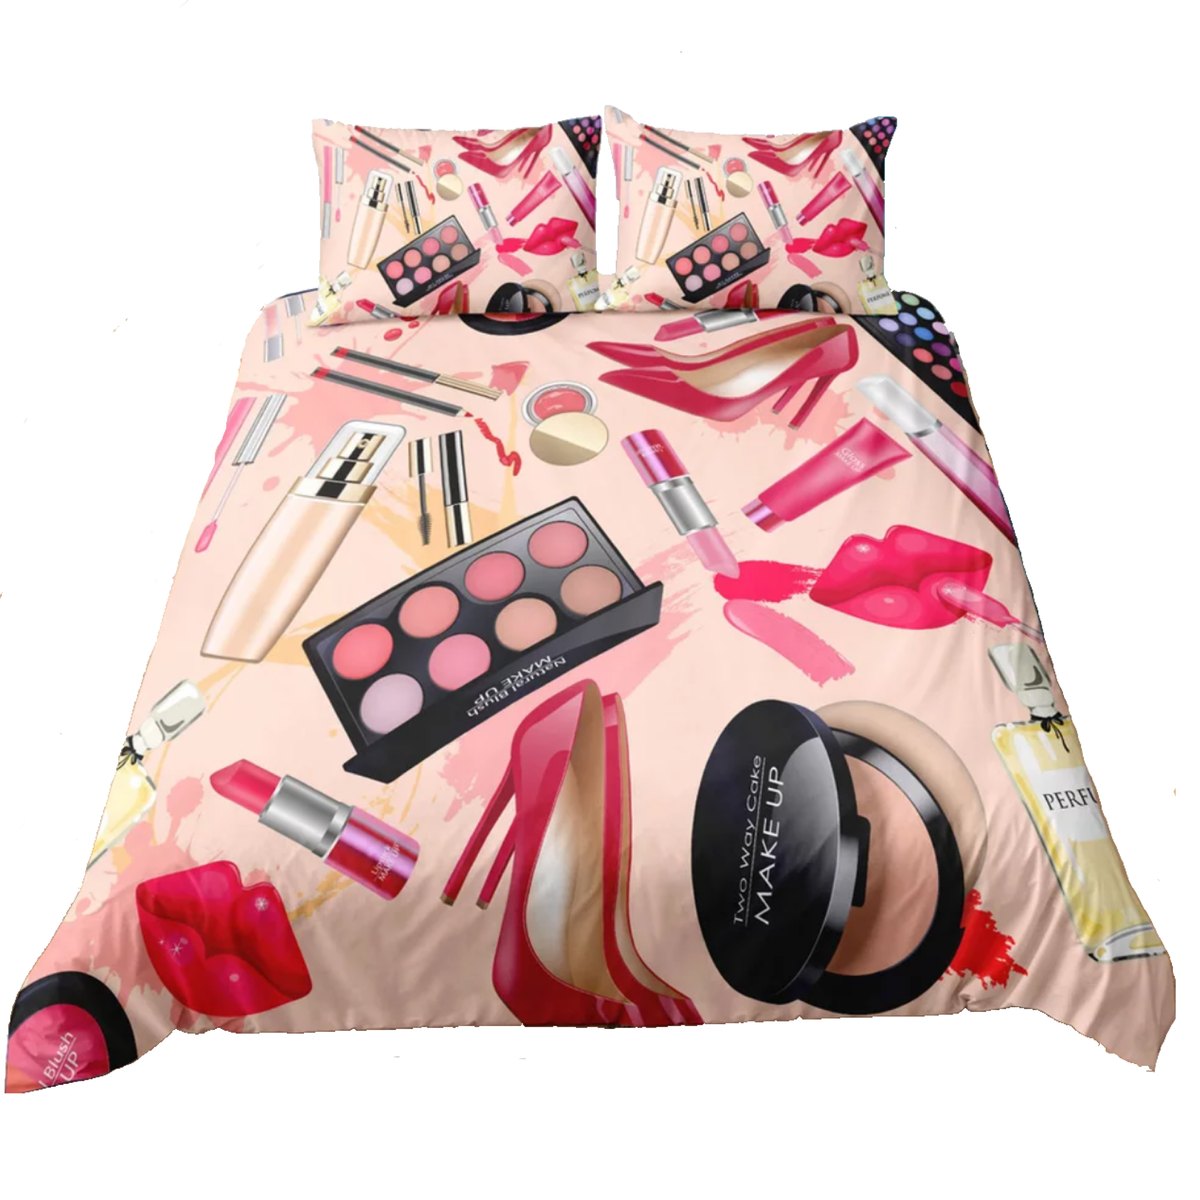 Makeup Theme Bedding With Pillow Cases - lexinoelbeauty.com